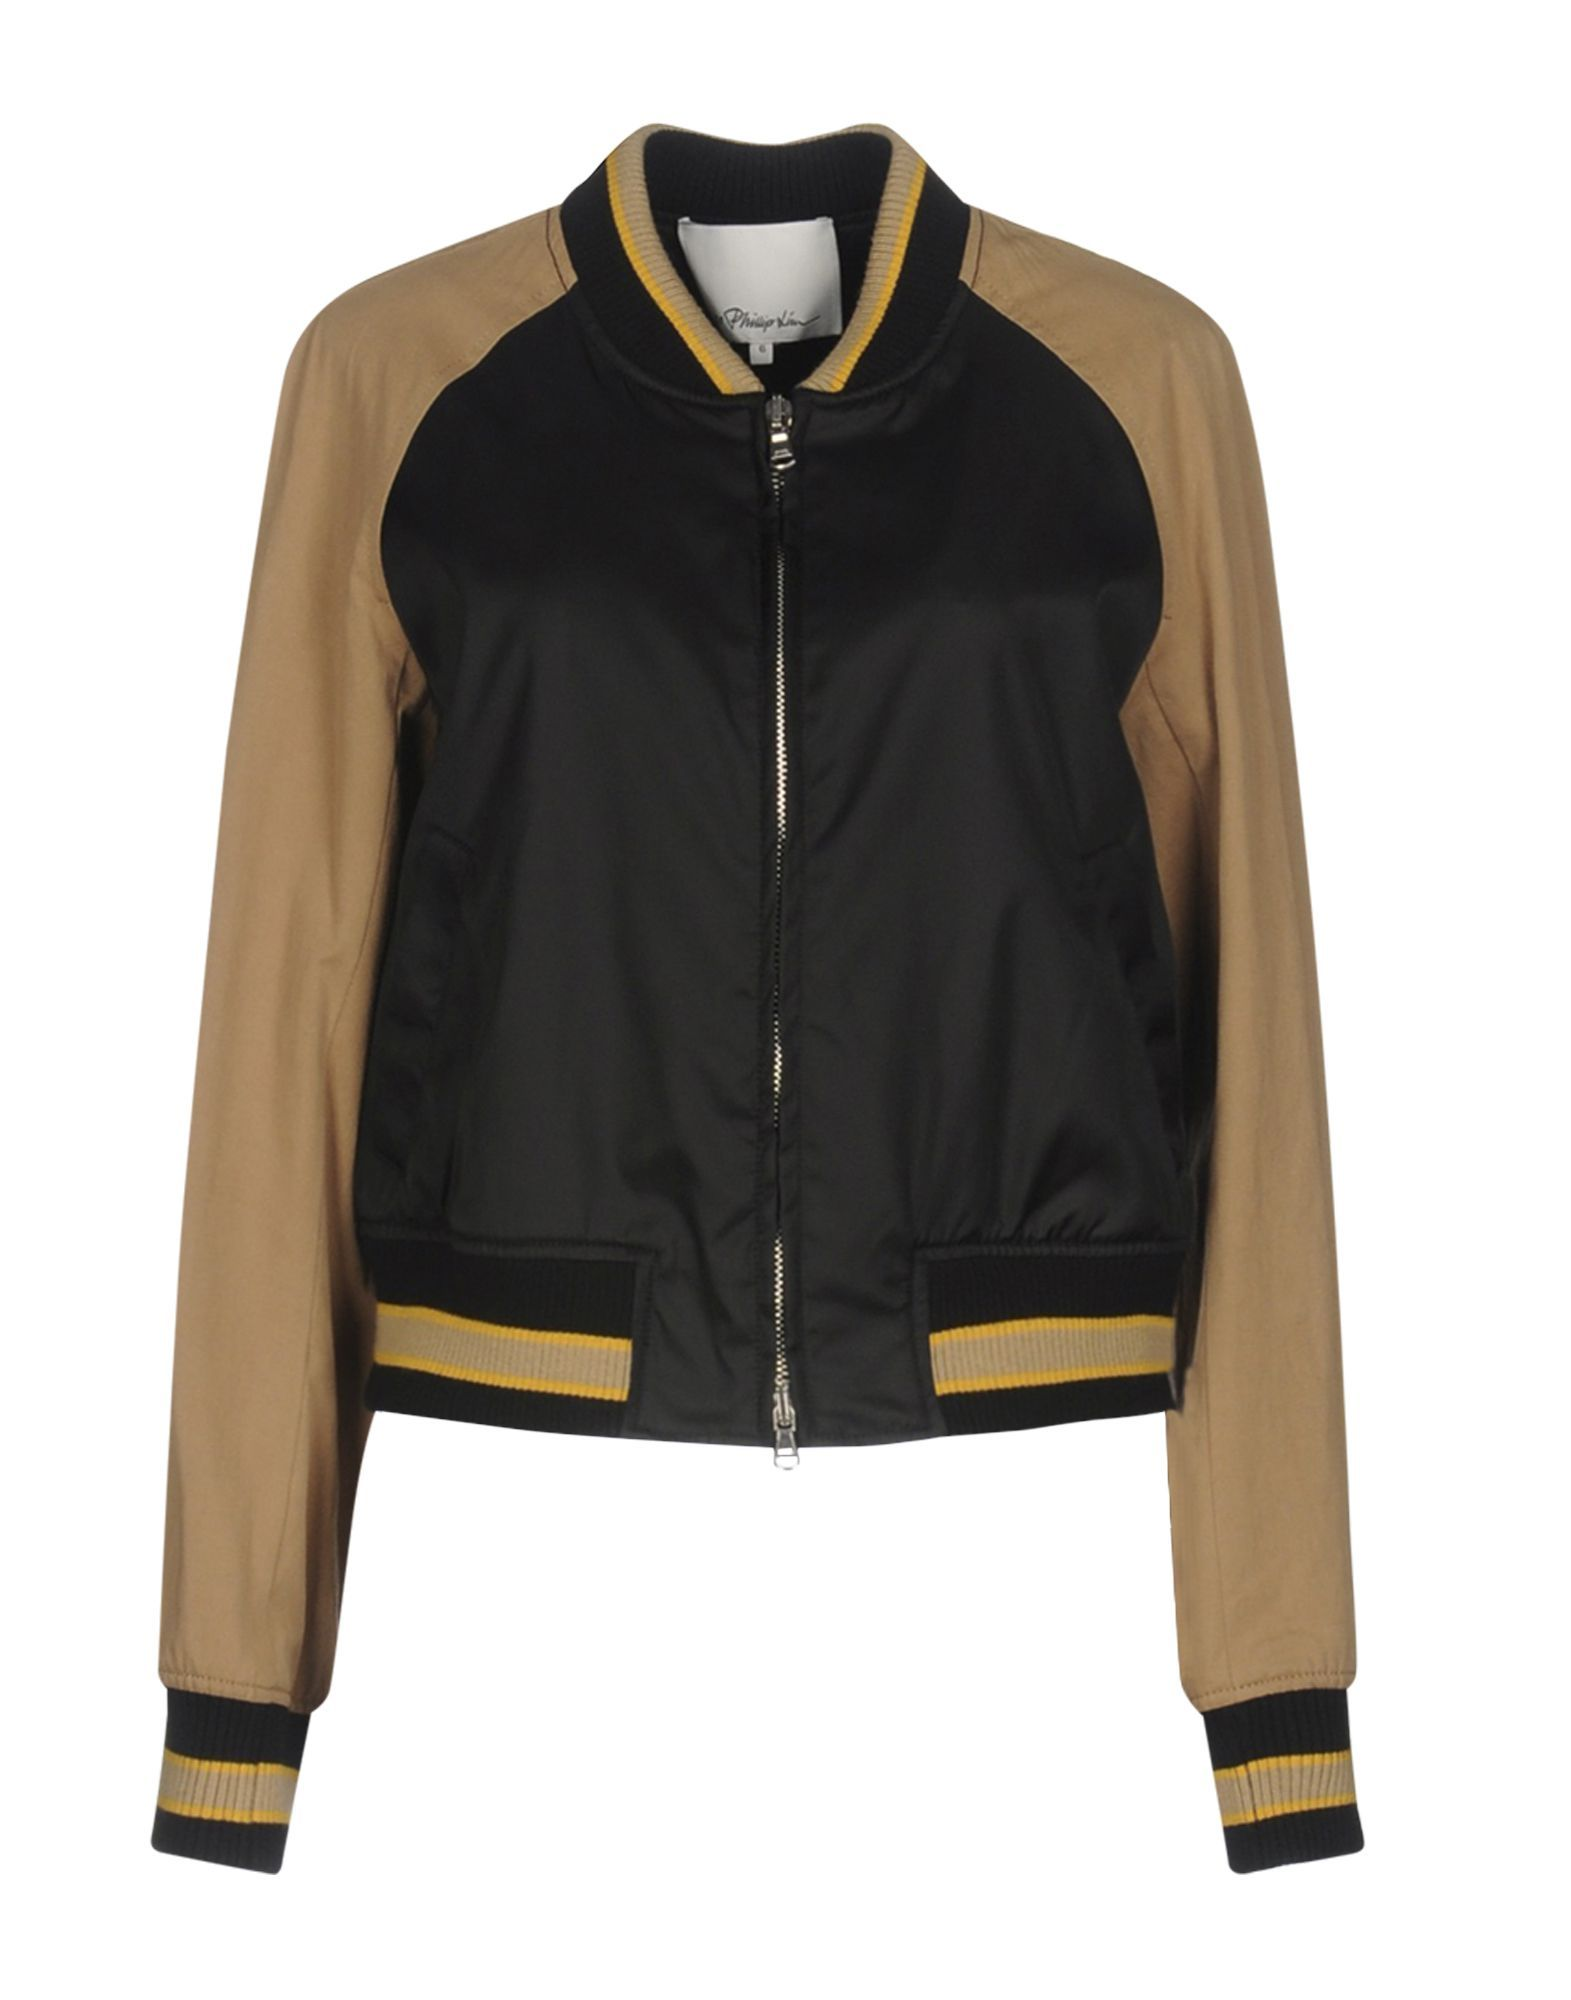 3.1 Phillip Lim Black Techno Fabric Bomber Jacket